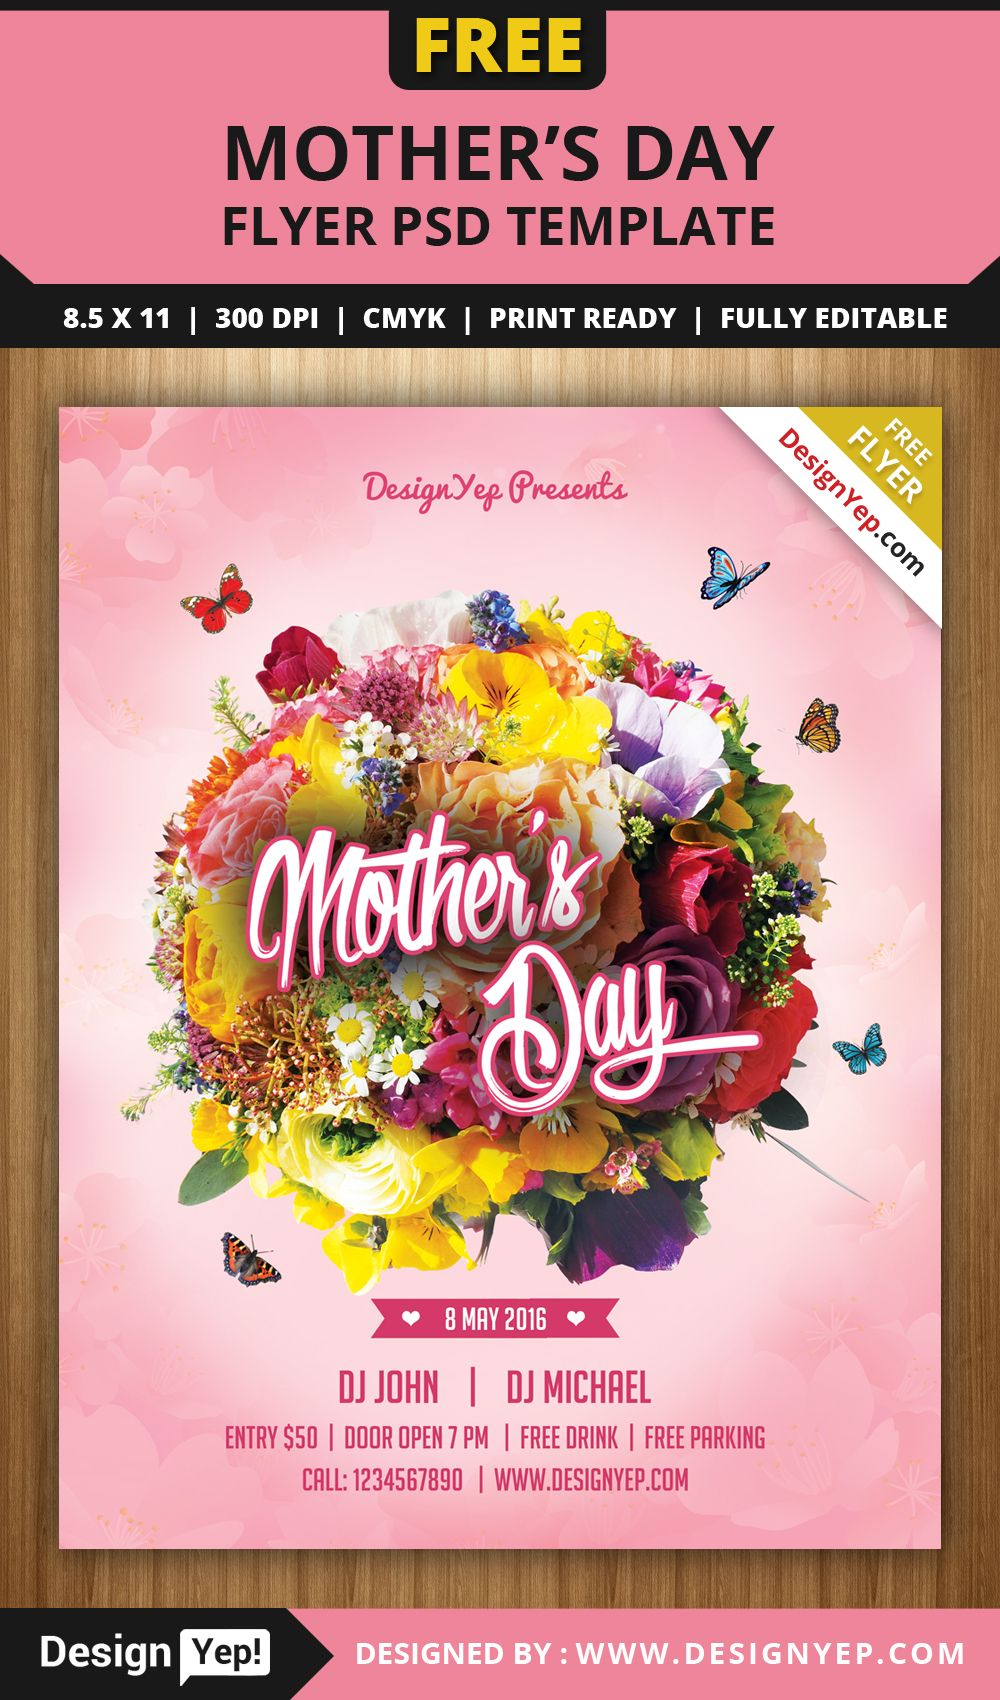 free mothers day flyer psd template 5656 designyep free flyers